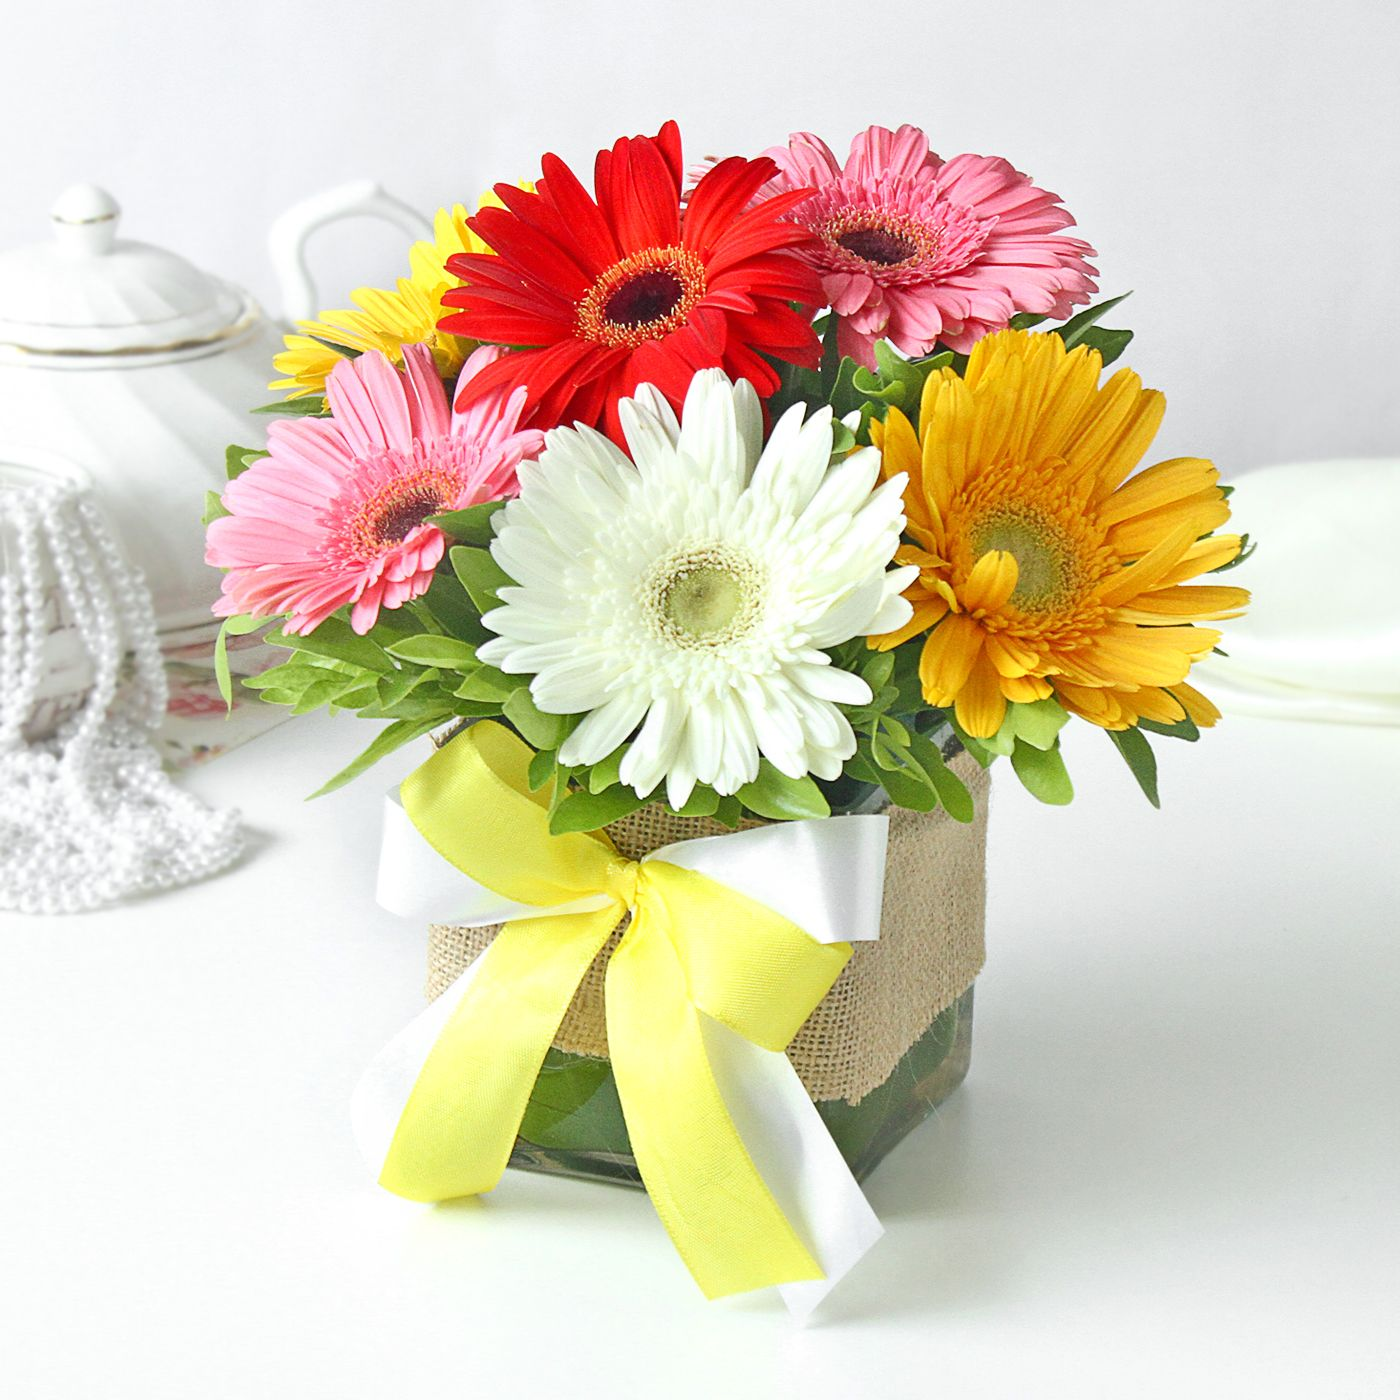 Send Flowers to Mumbai Flower Delivery in Mumbai in 3